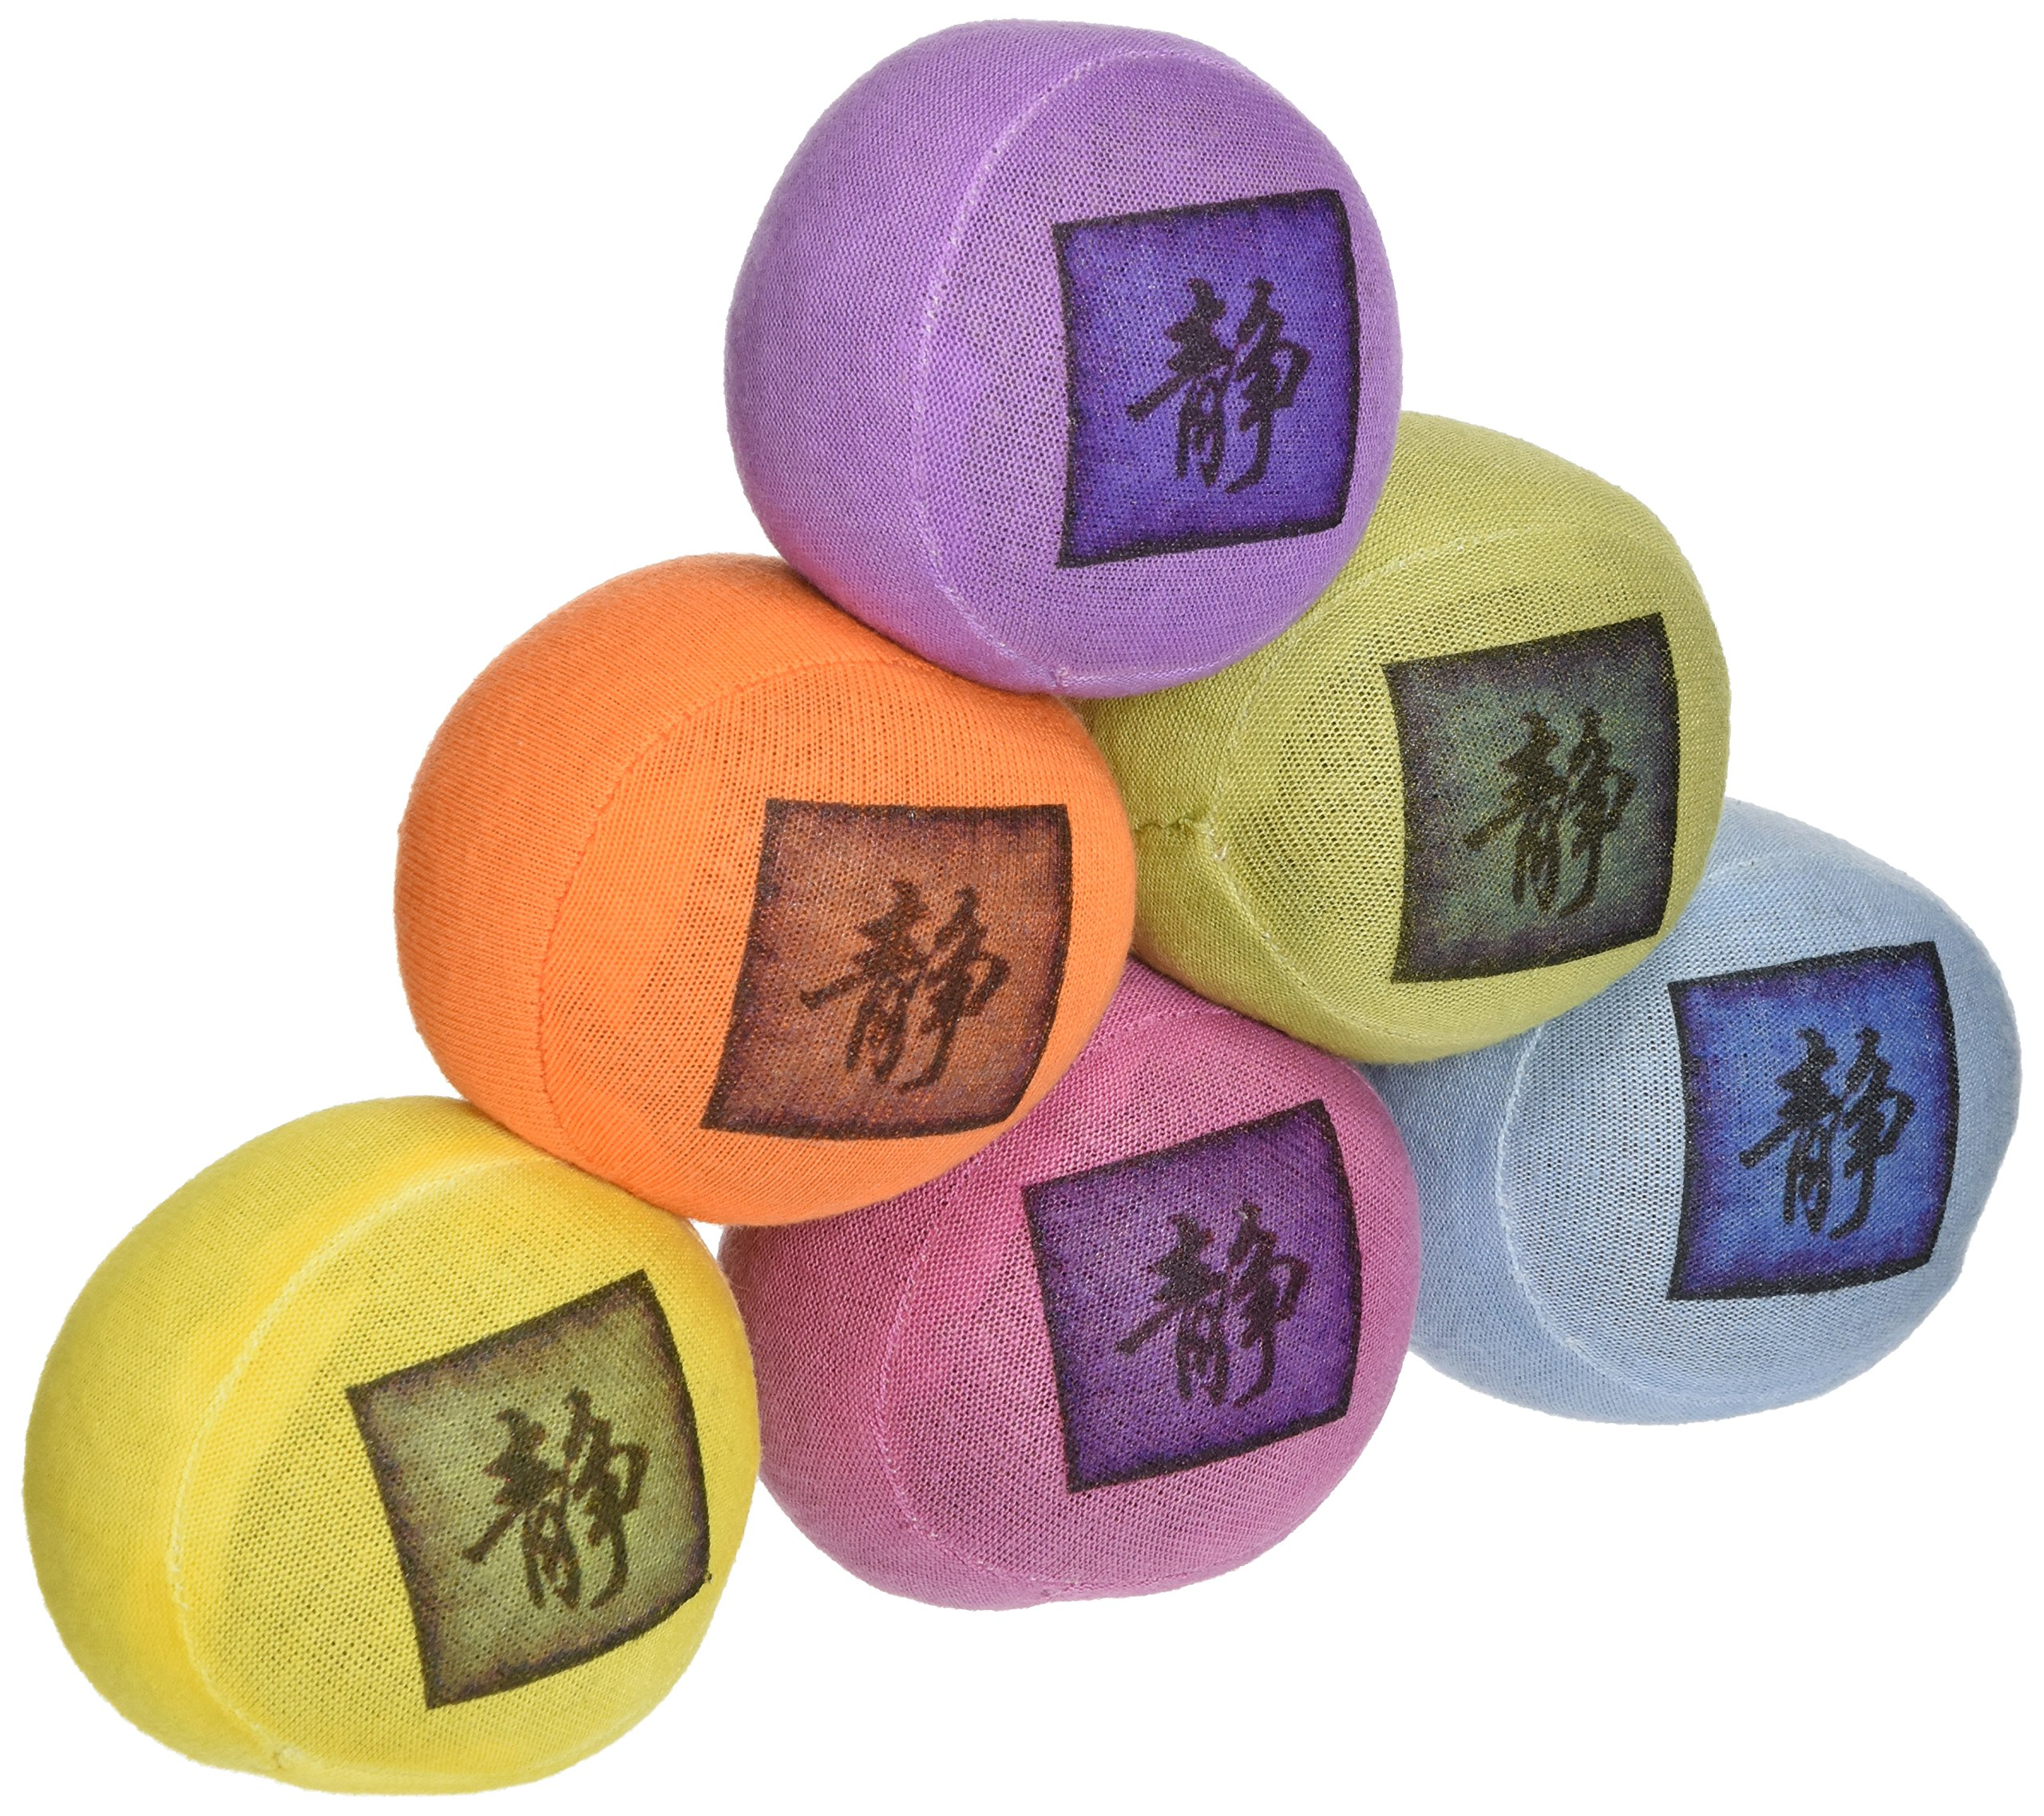 Lavender Luvies Lavender Stress Balls, Serenity - 6 Pack by Lavender Luvies